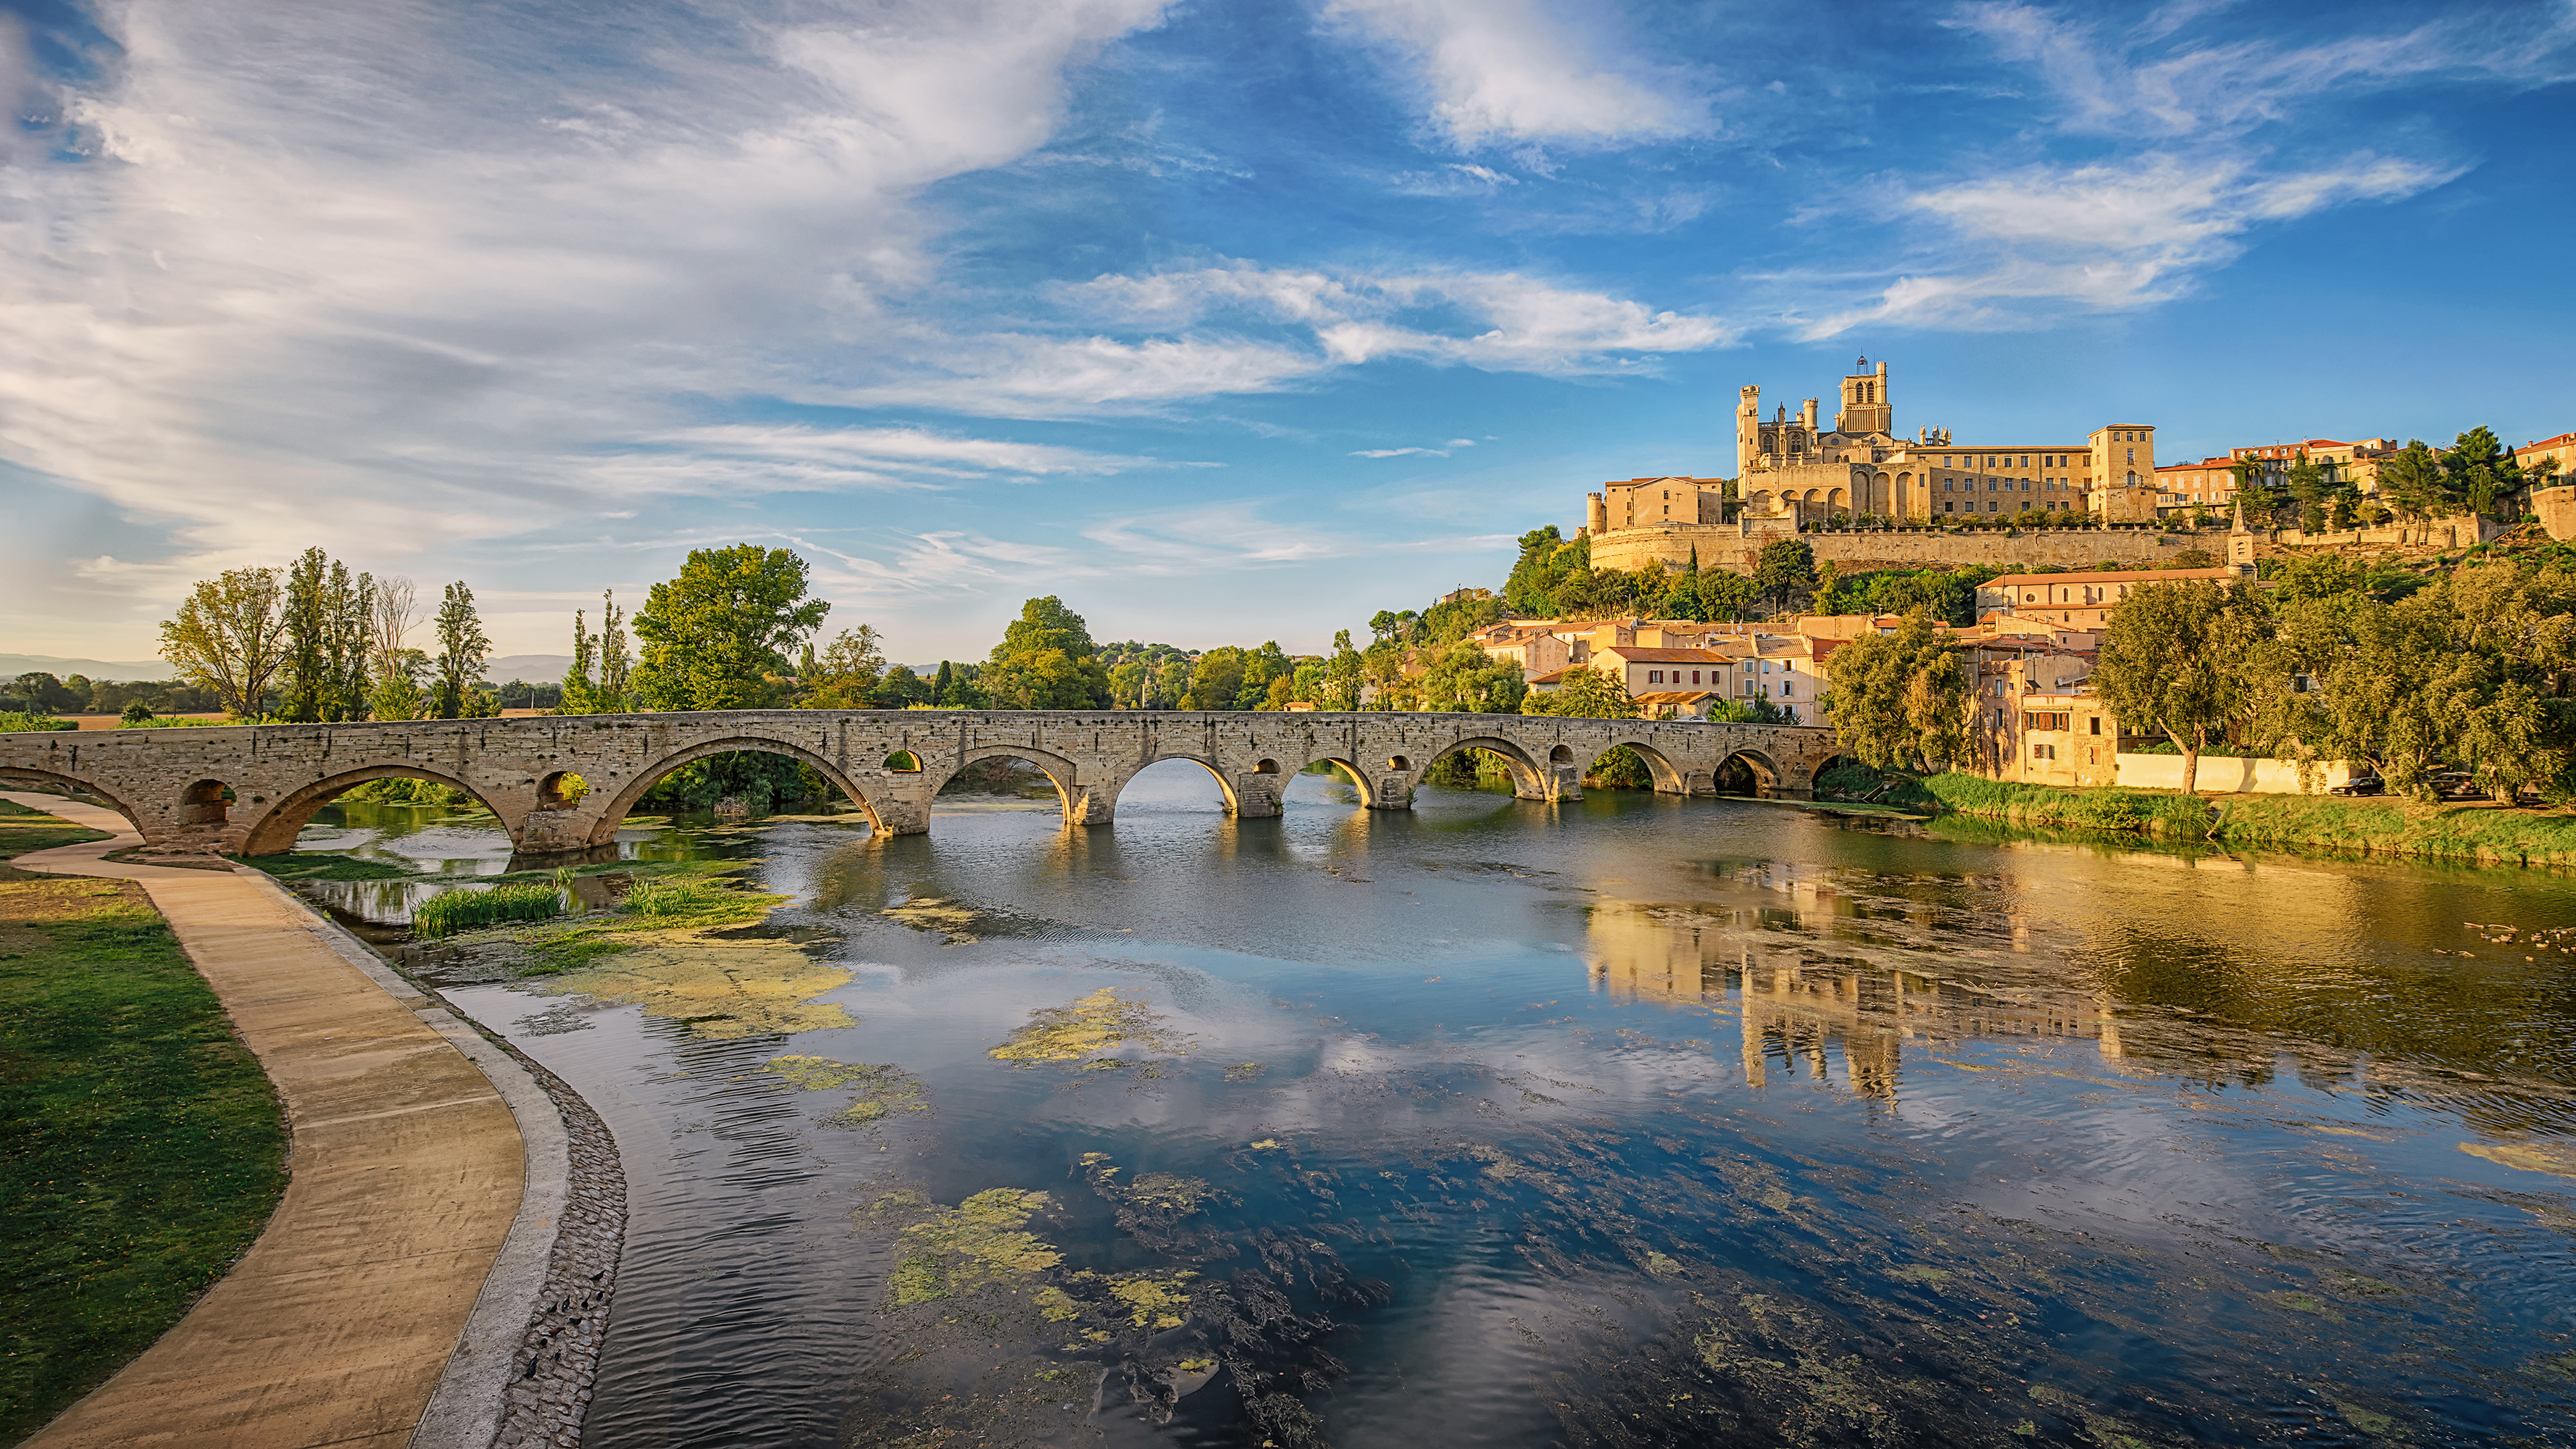 France River Bridge Beziers Town Reflection 3555x2000